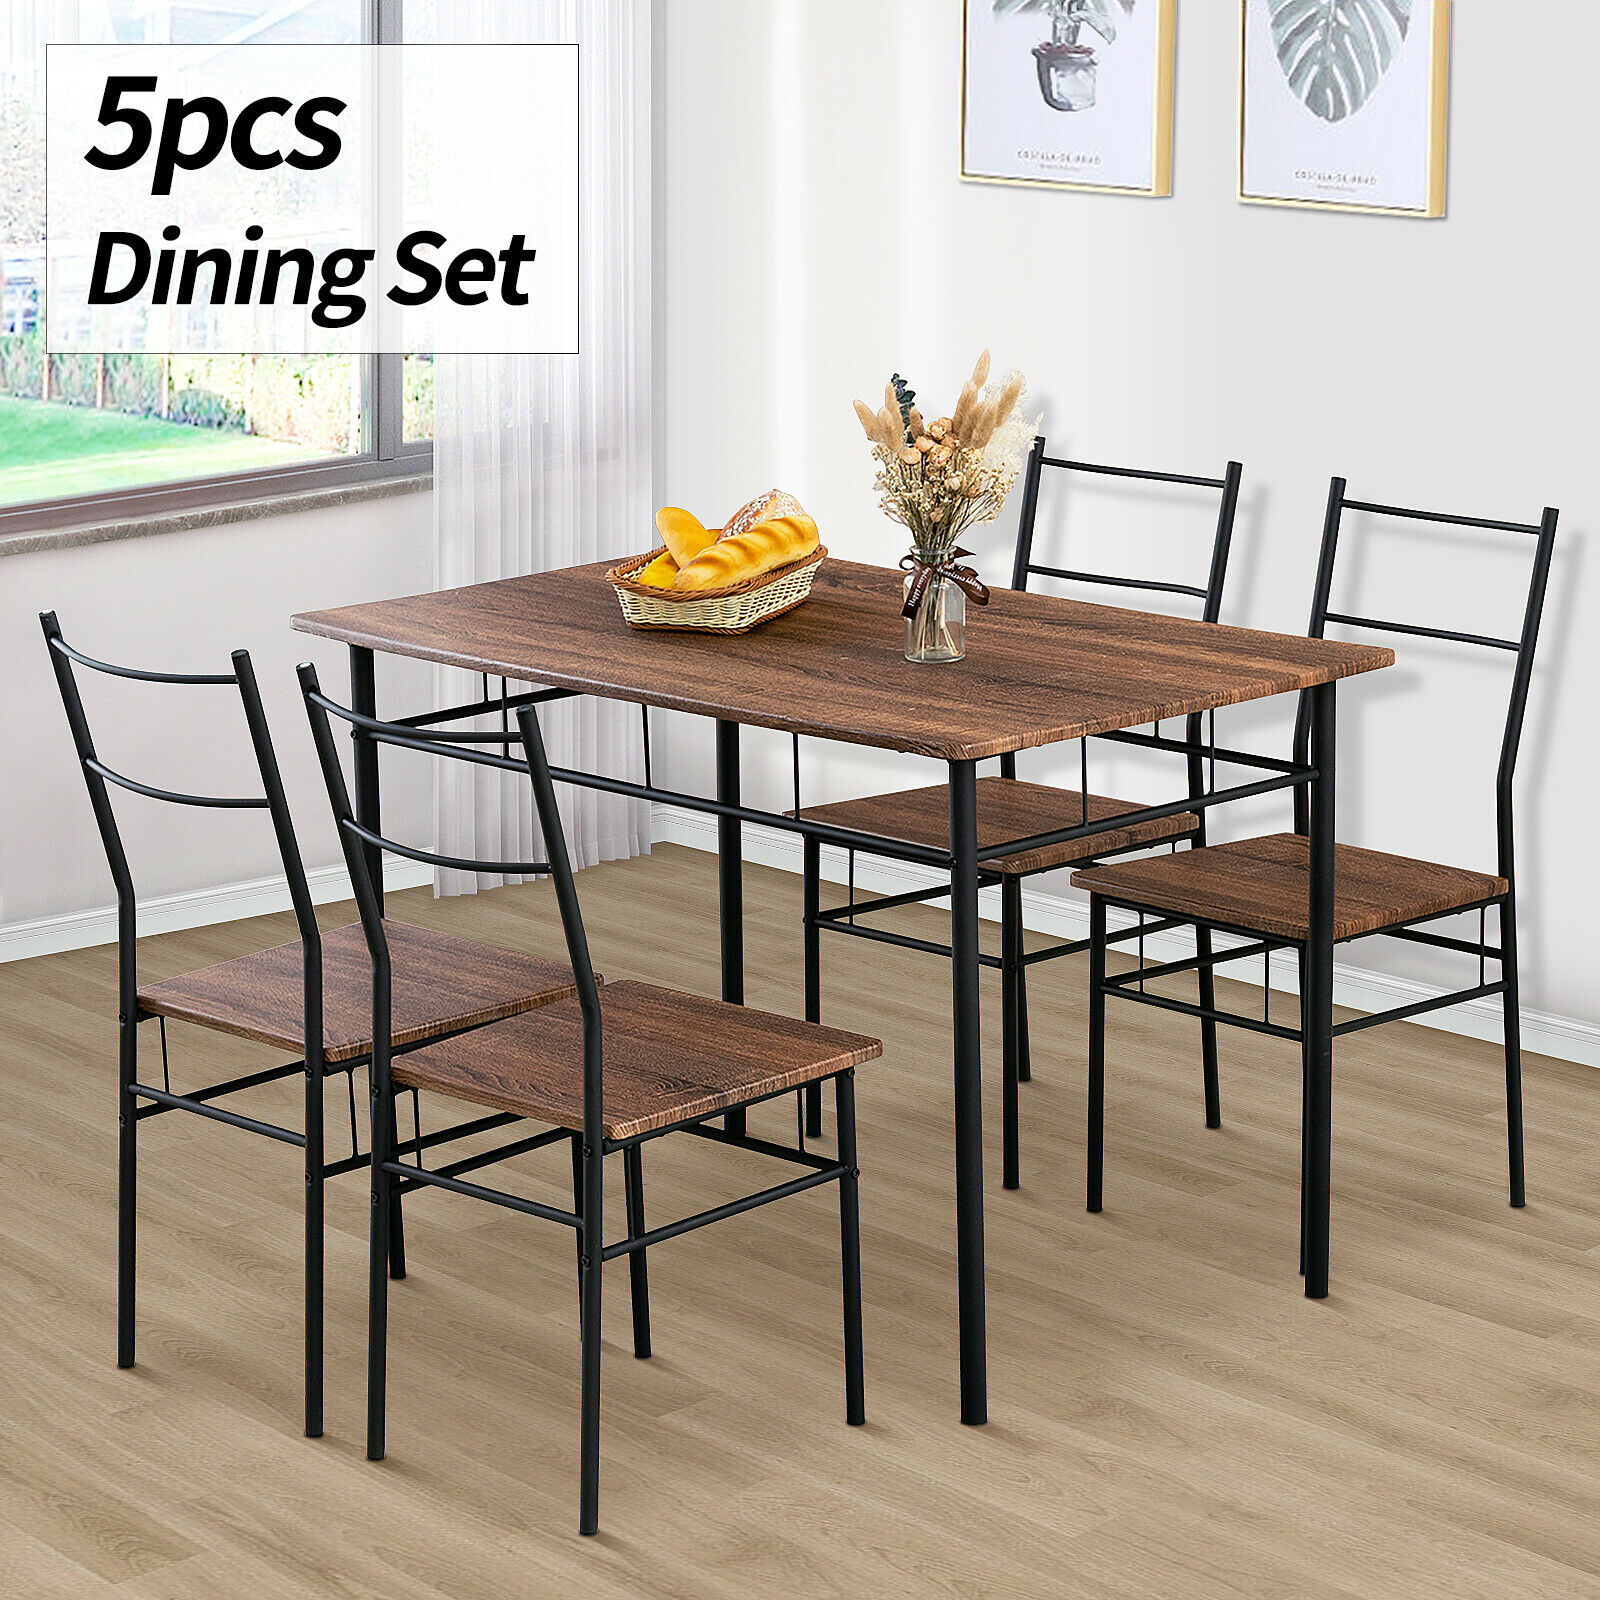 5 Piece Metal Dining Table Furniture Set 4 Chairs Wood Top Dining Room Brown